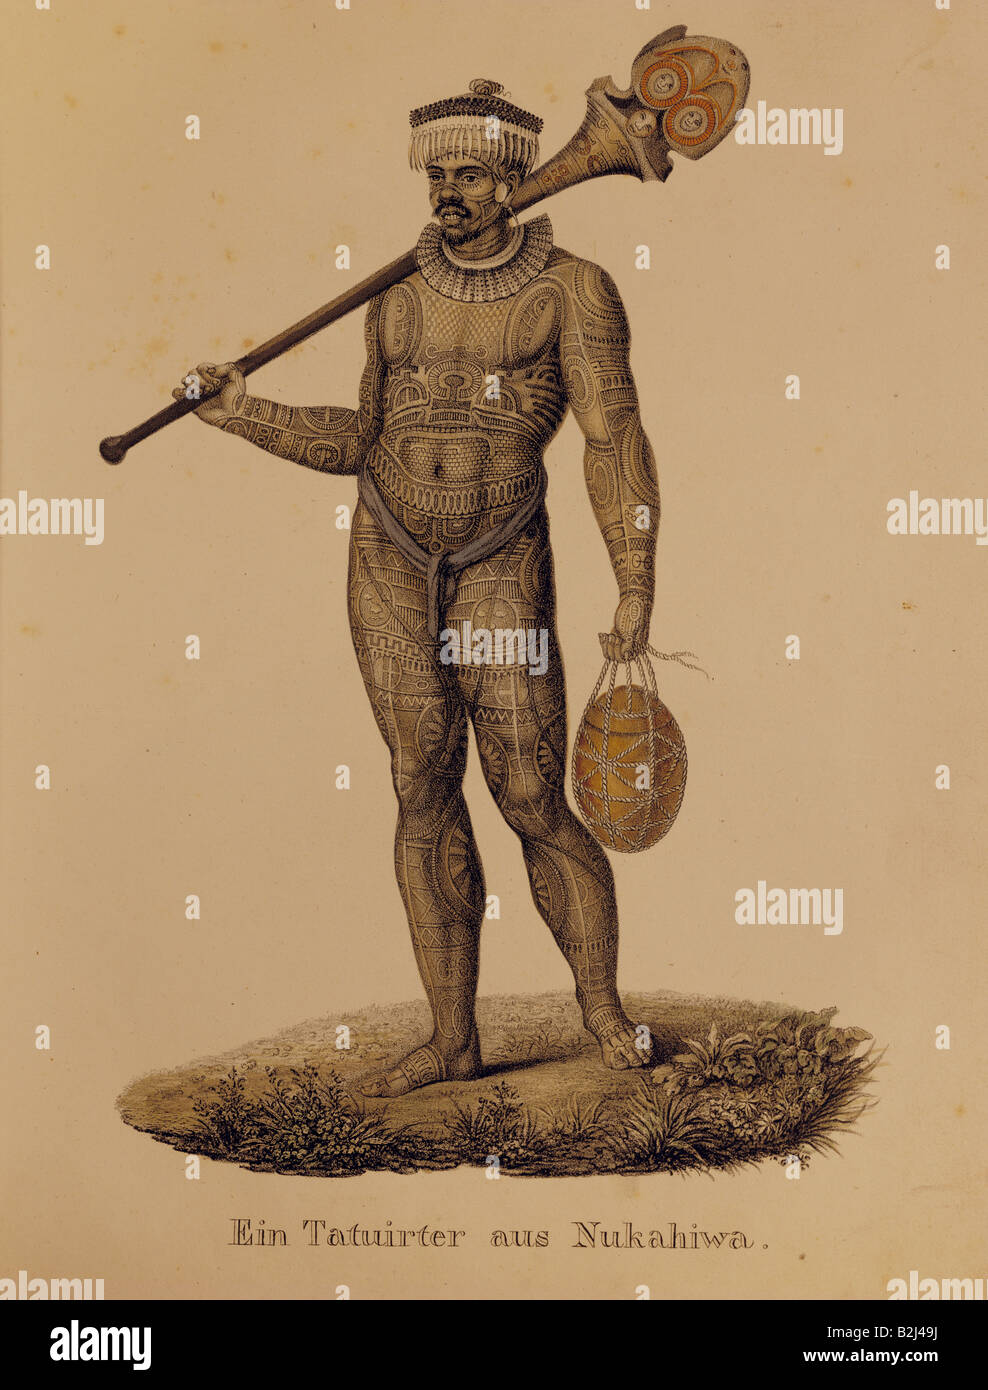 people, ethnology, men, 'Ein Tatuirter aus Nukahiwa' (A tattooed man from Nuku Hiva), lithograph by Karl - Stock Image